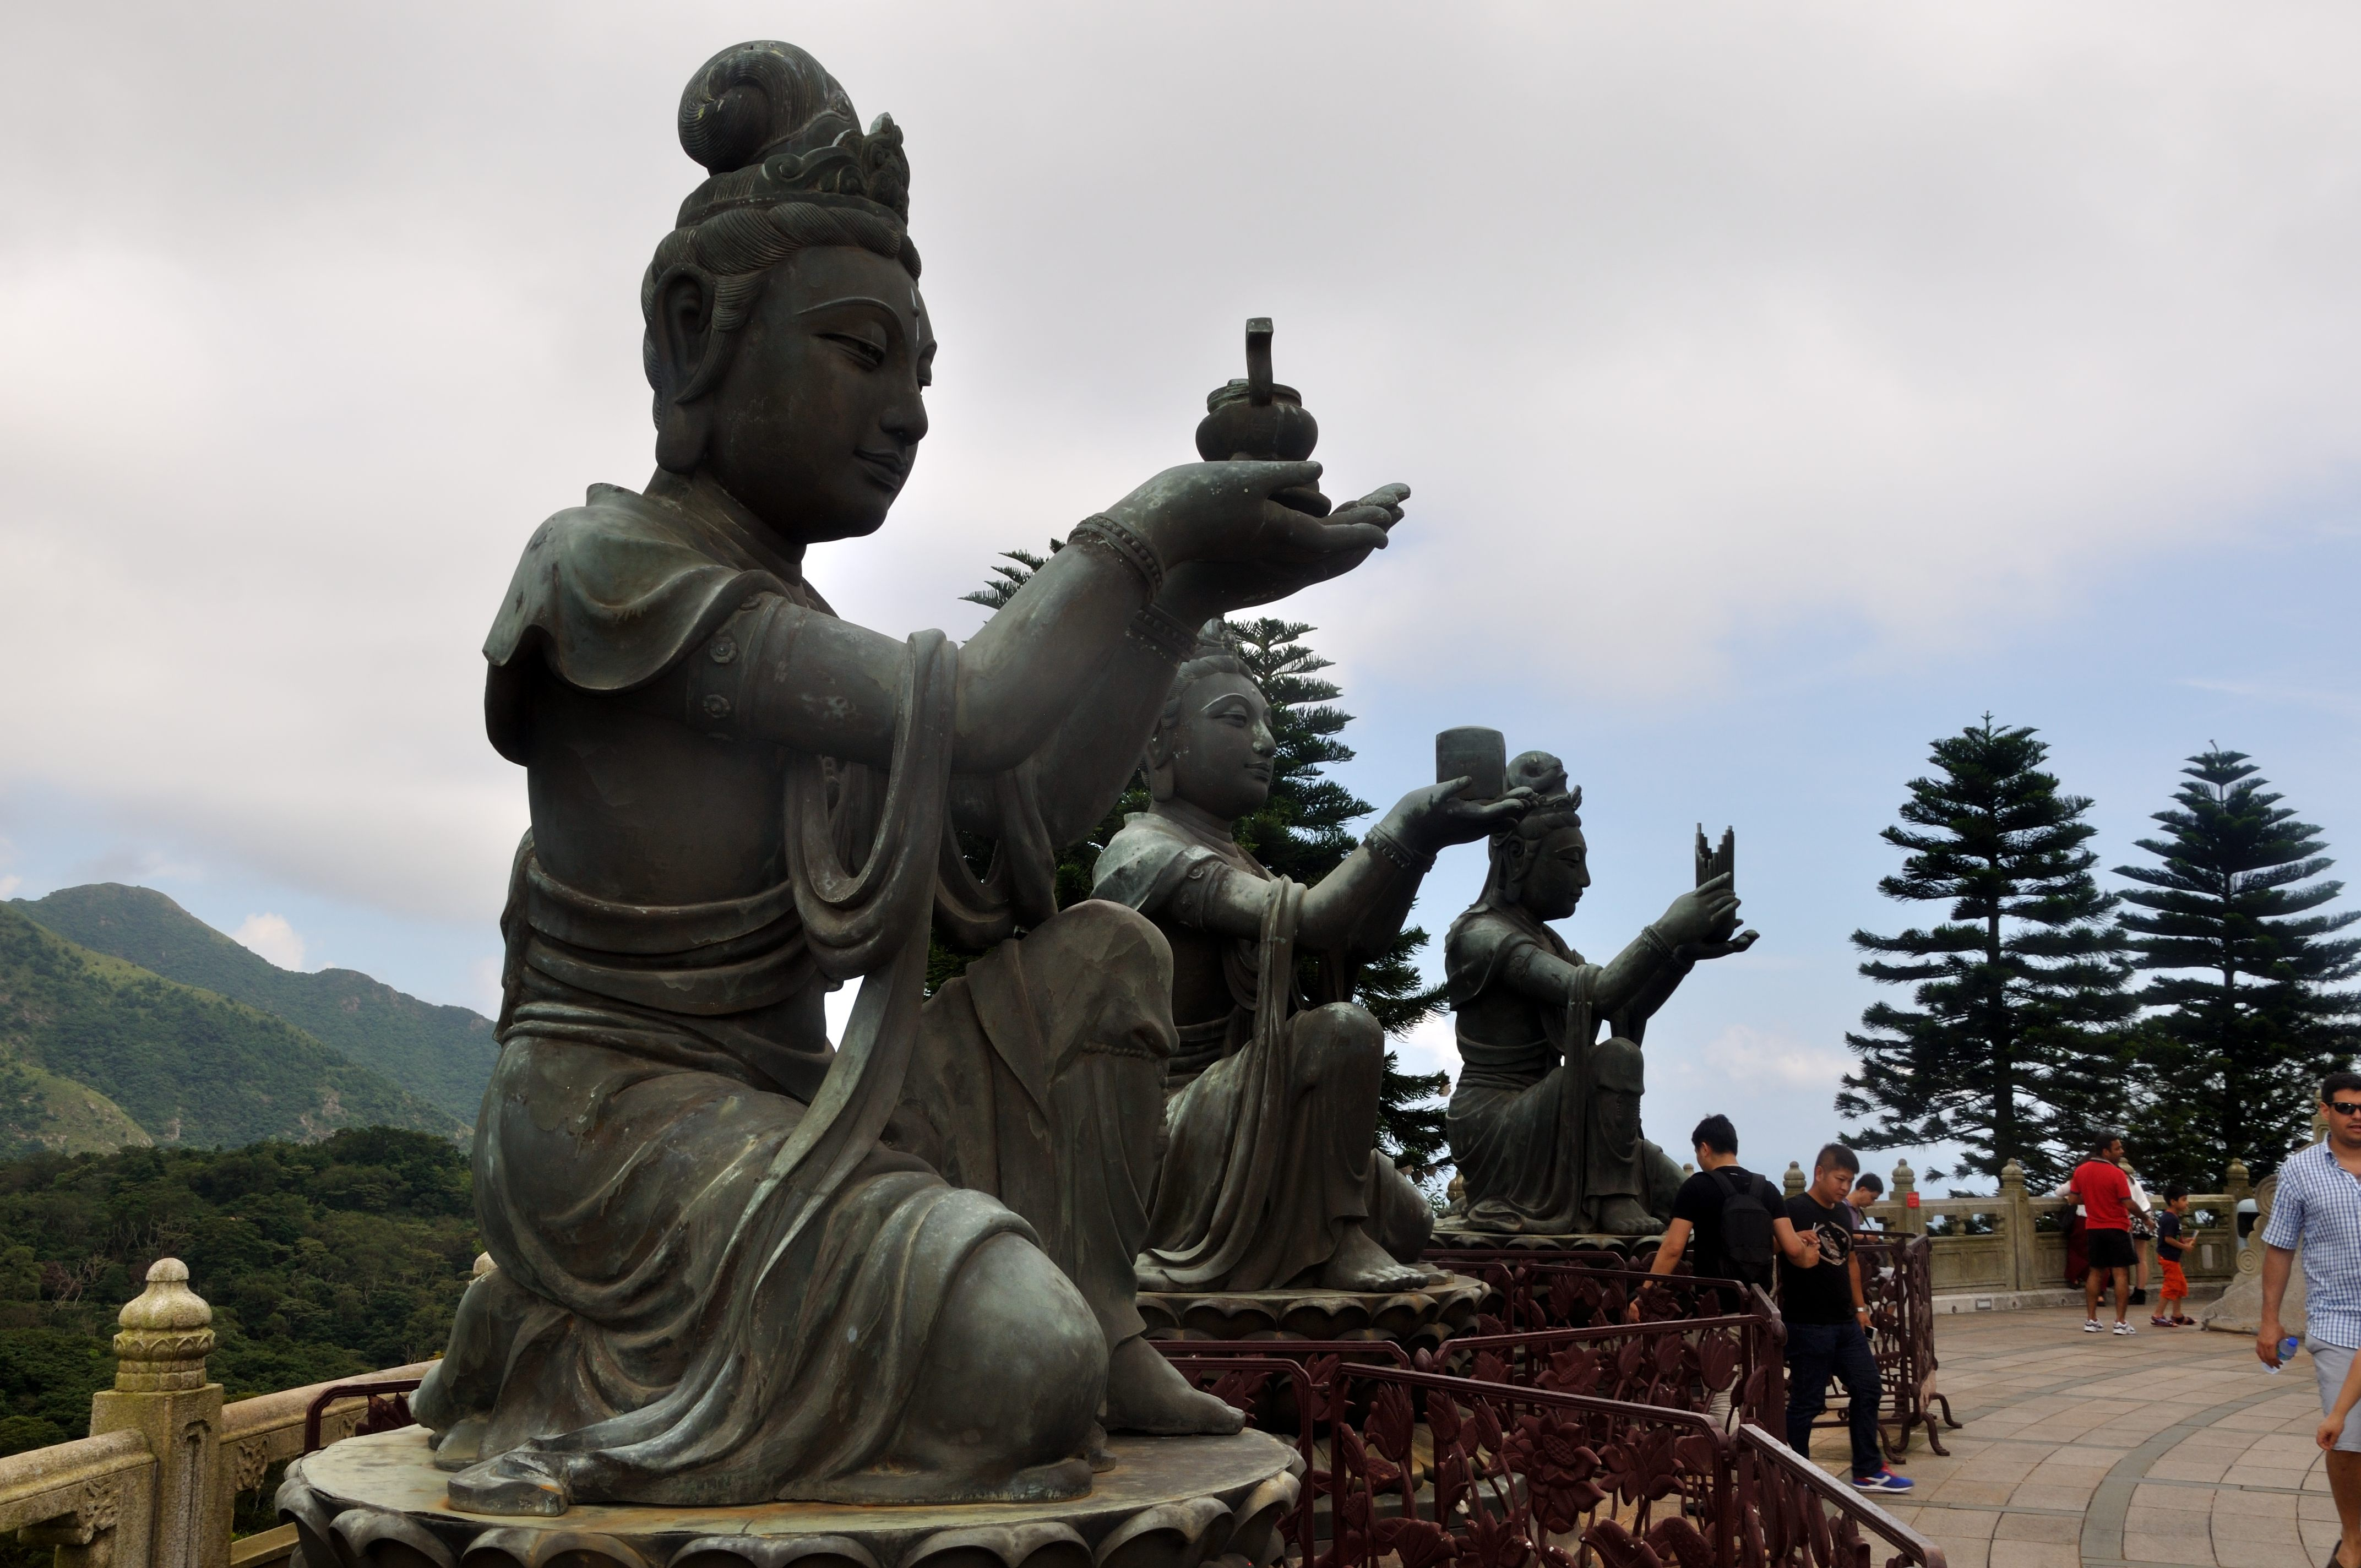 Offerings to the Big Budda `